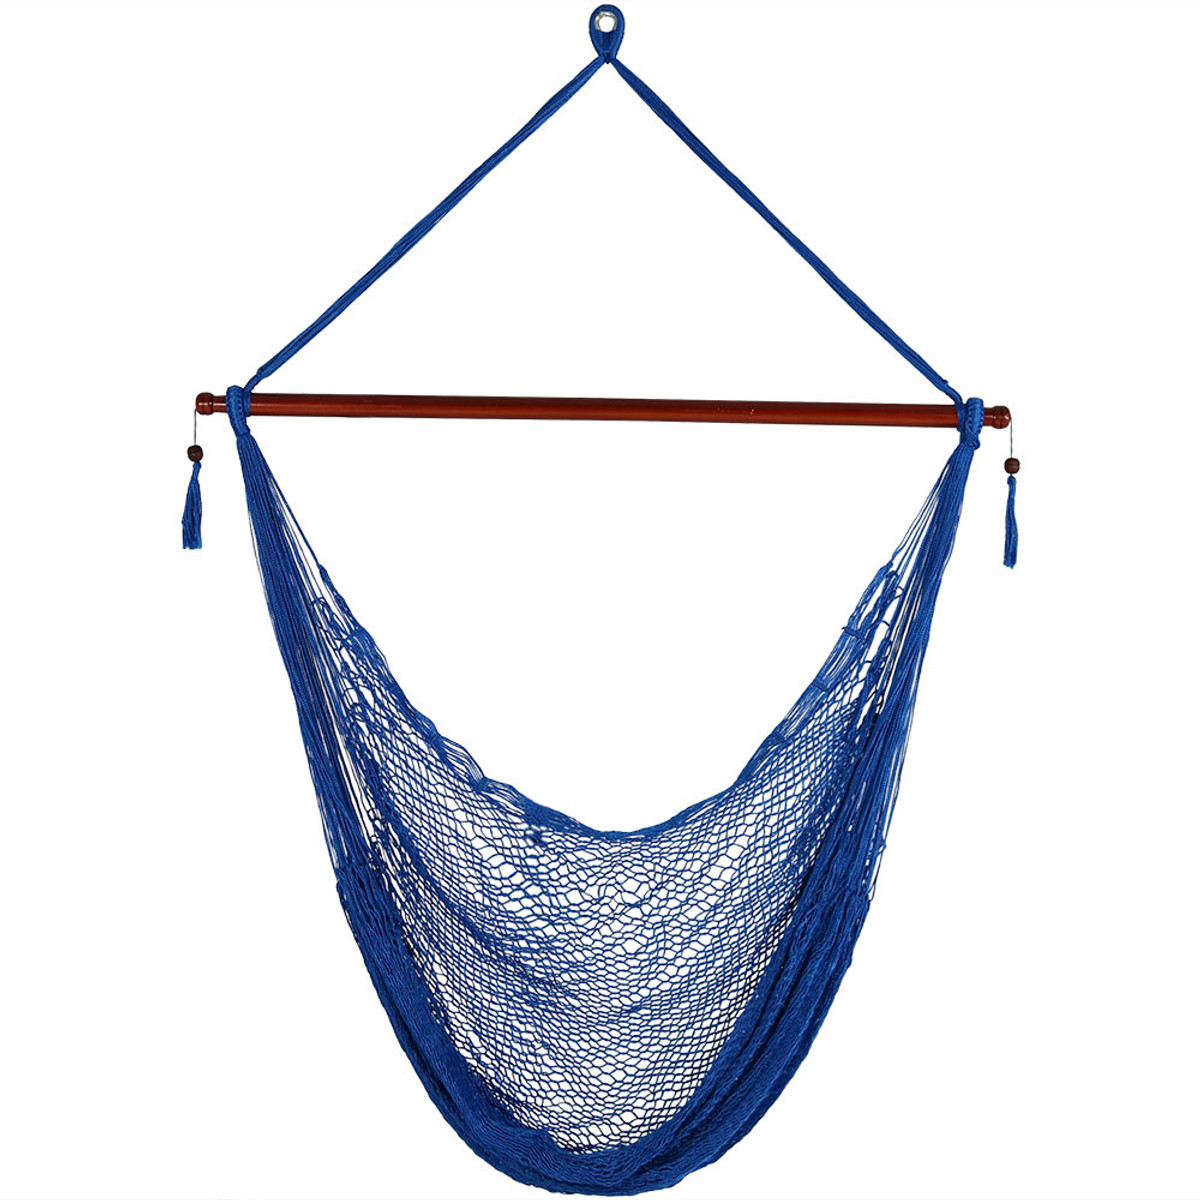 Sunnydaze Hanging Cabo Extra Large Hammock Chair 47 Inch Wide